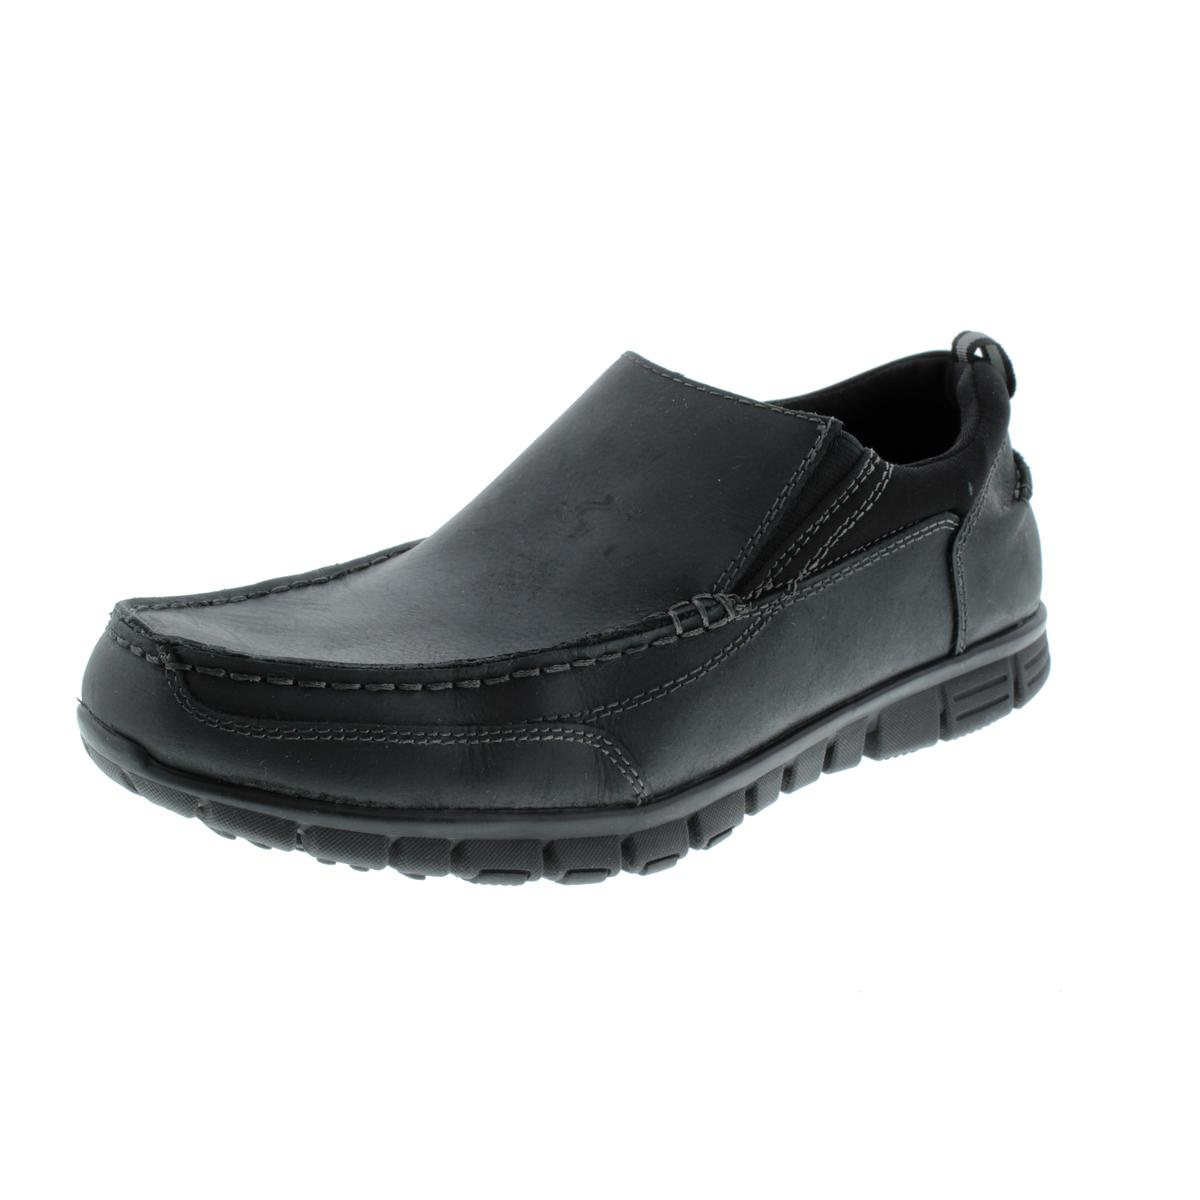 Dr Scholl's Mens Slide Leather Work Casual Shoes by Dr Scholl's